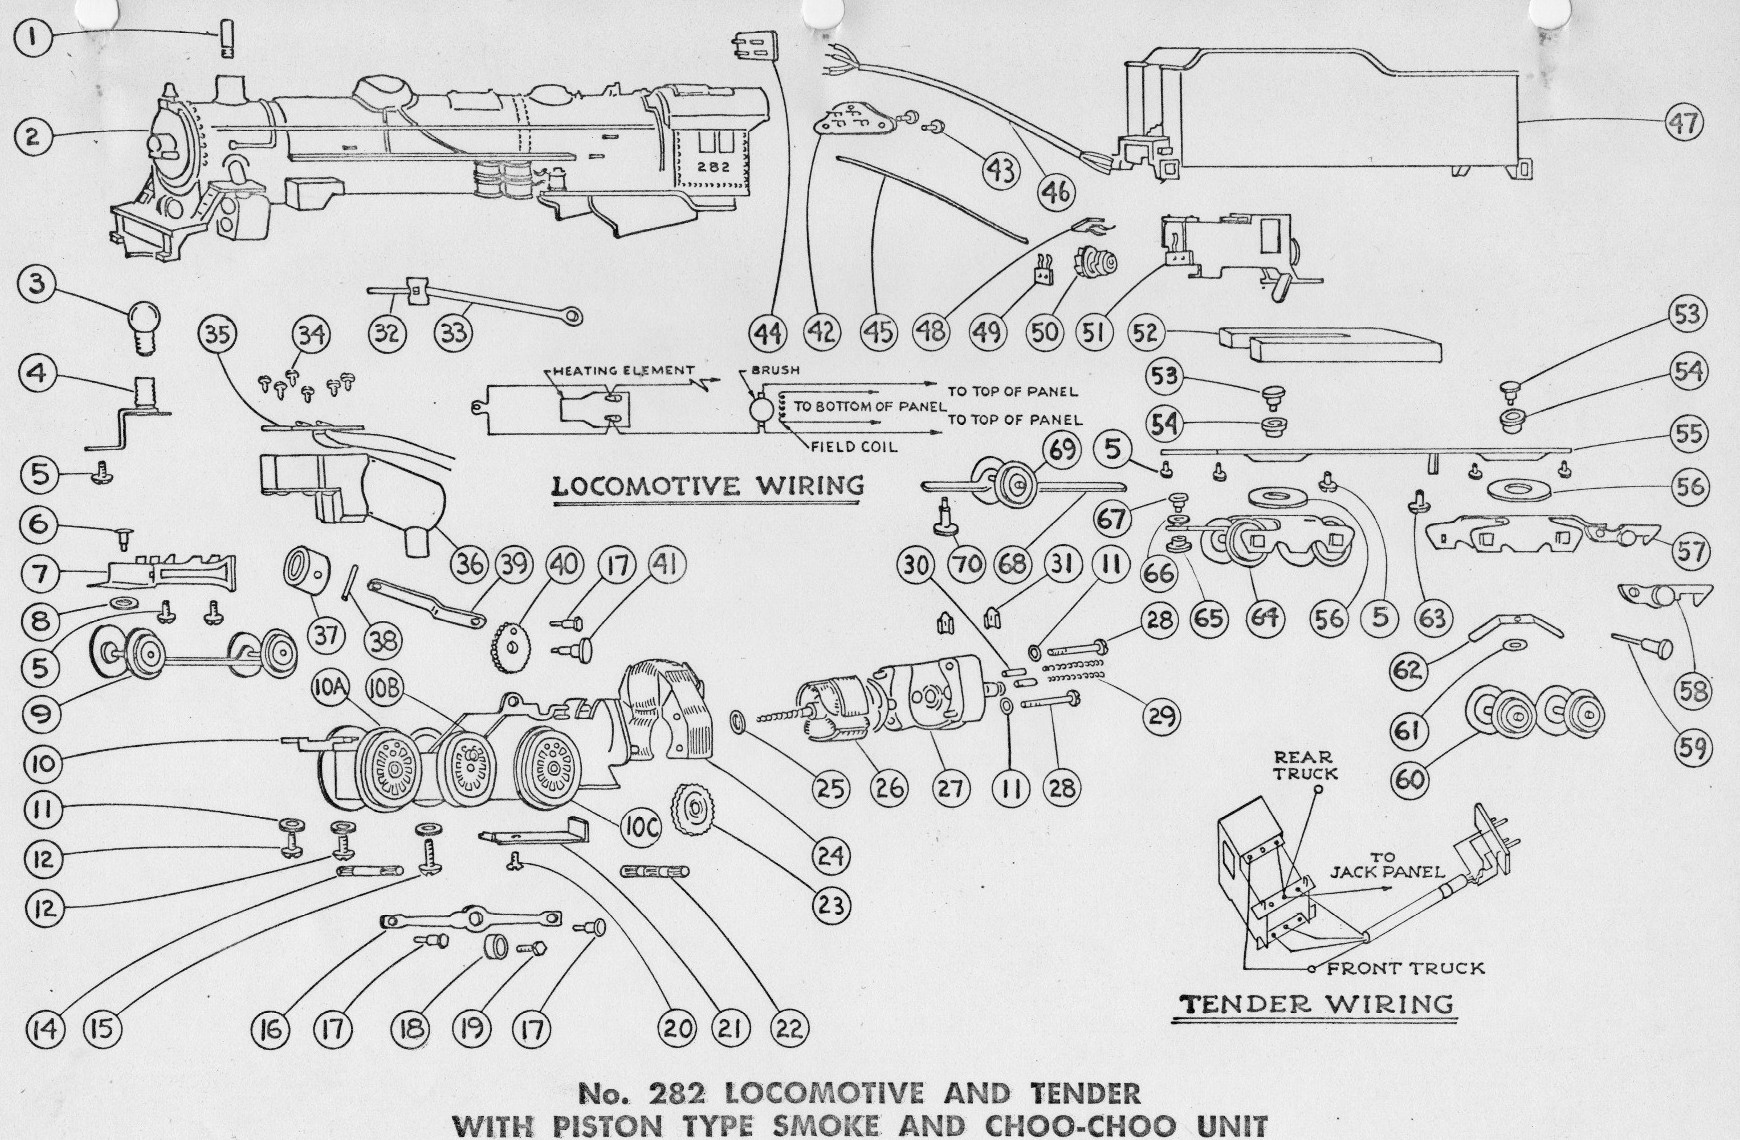 American Flyer Locomotive 282 Chicago North Western Parts List and Diagram - Page 2